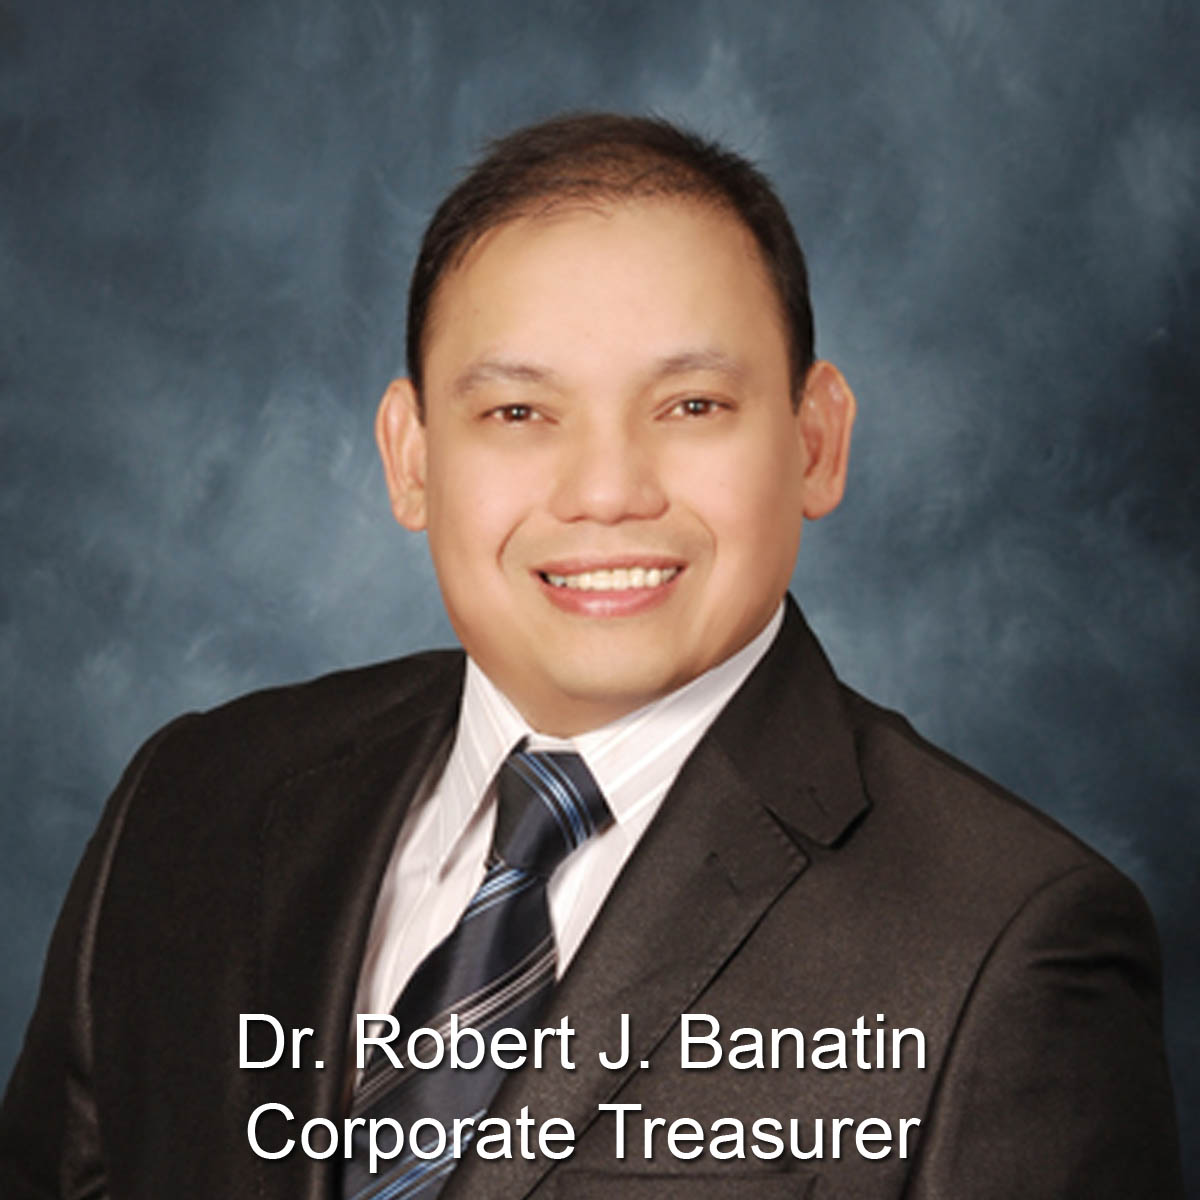 004DrRobertBanatin_CorporateTreasurer